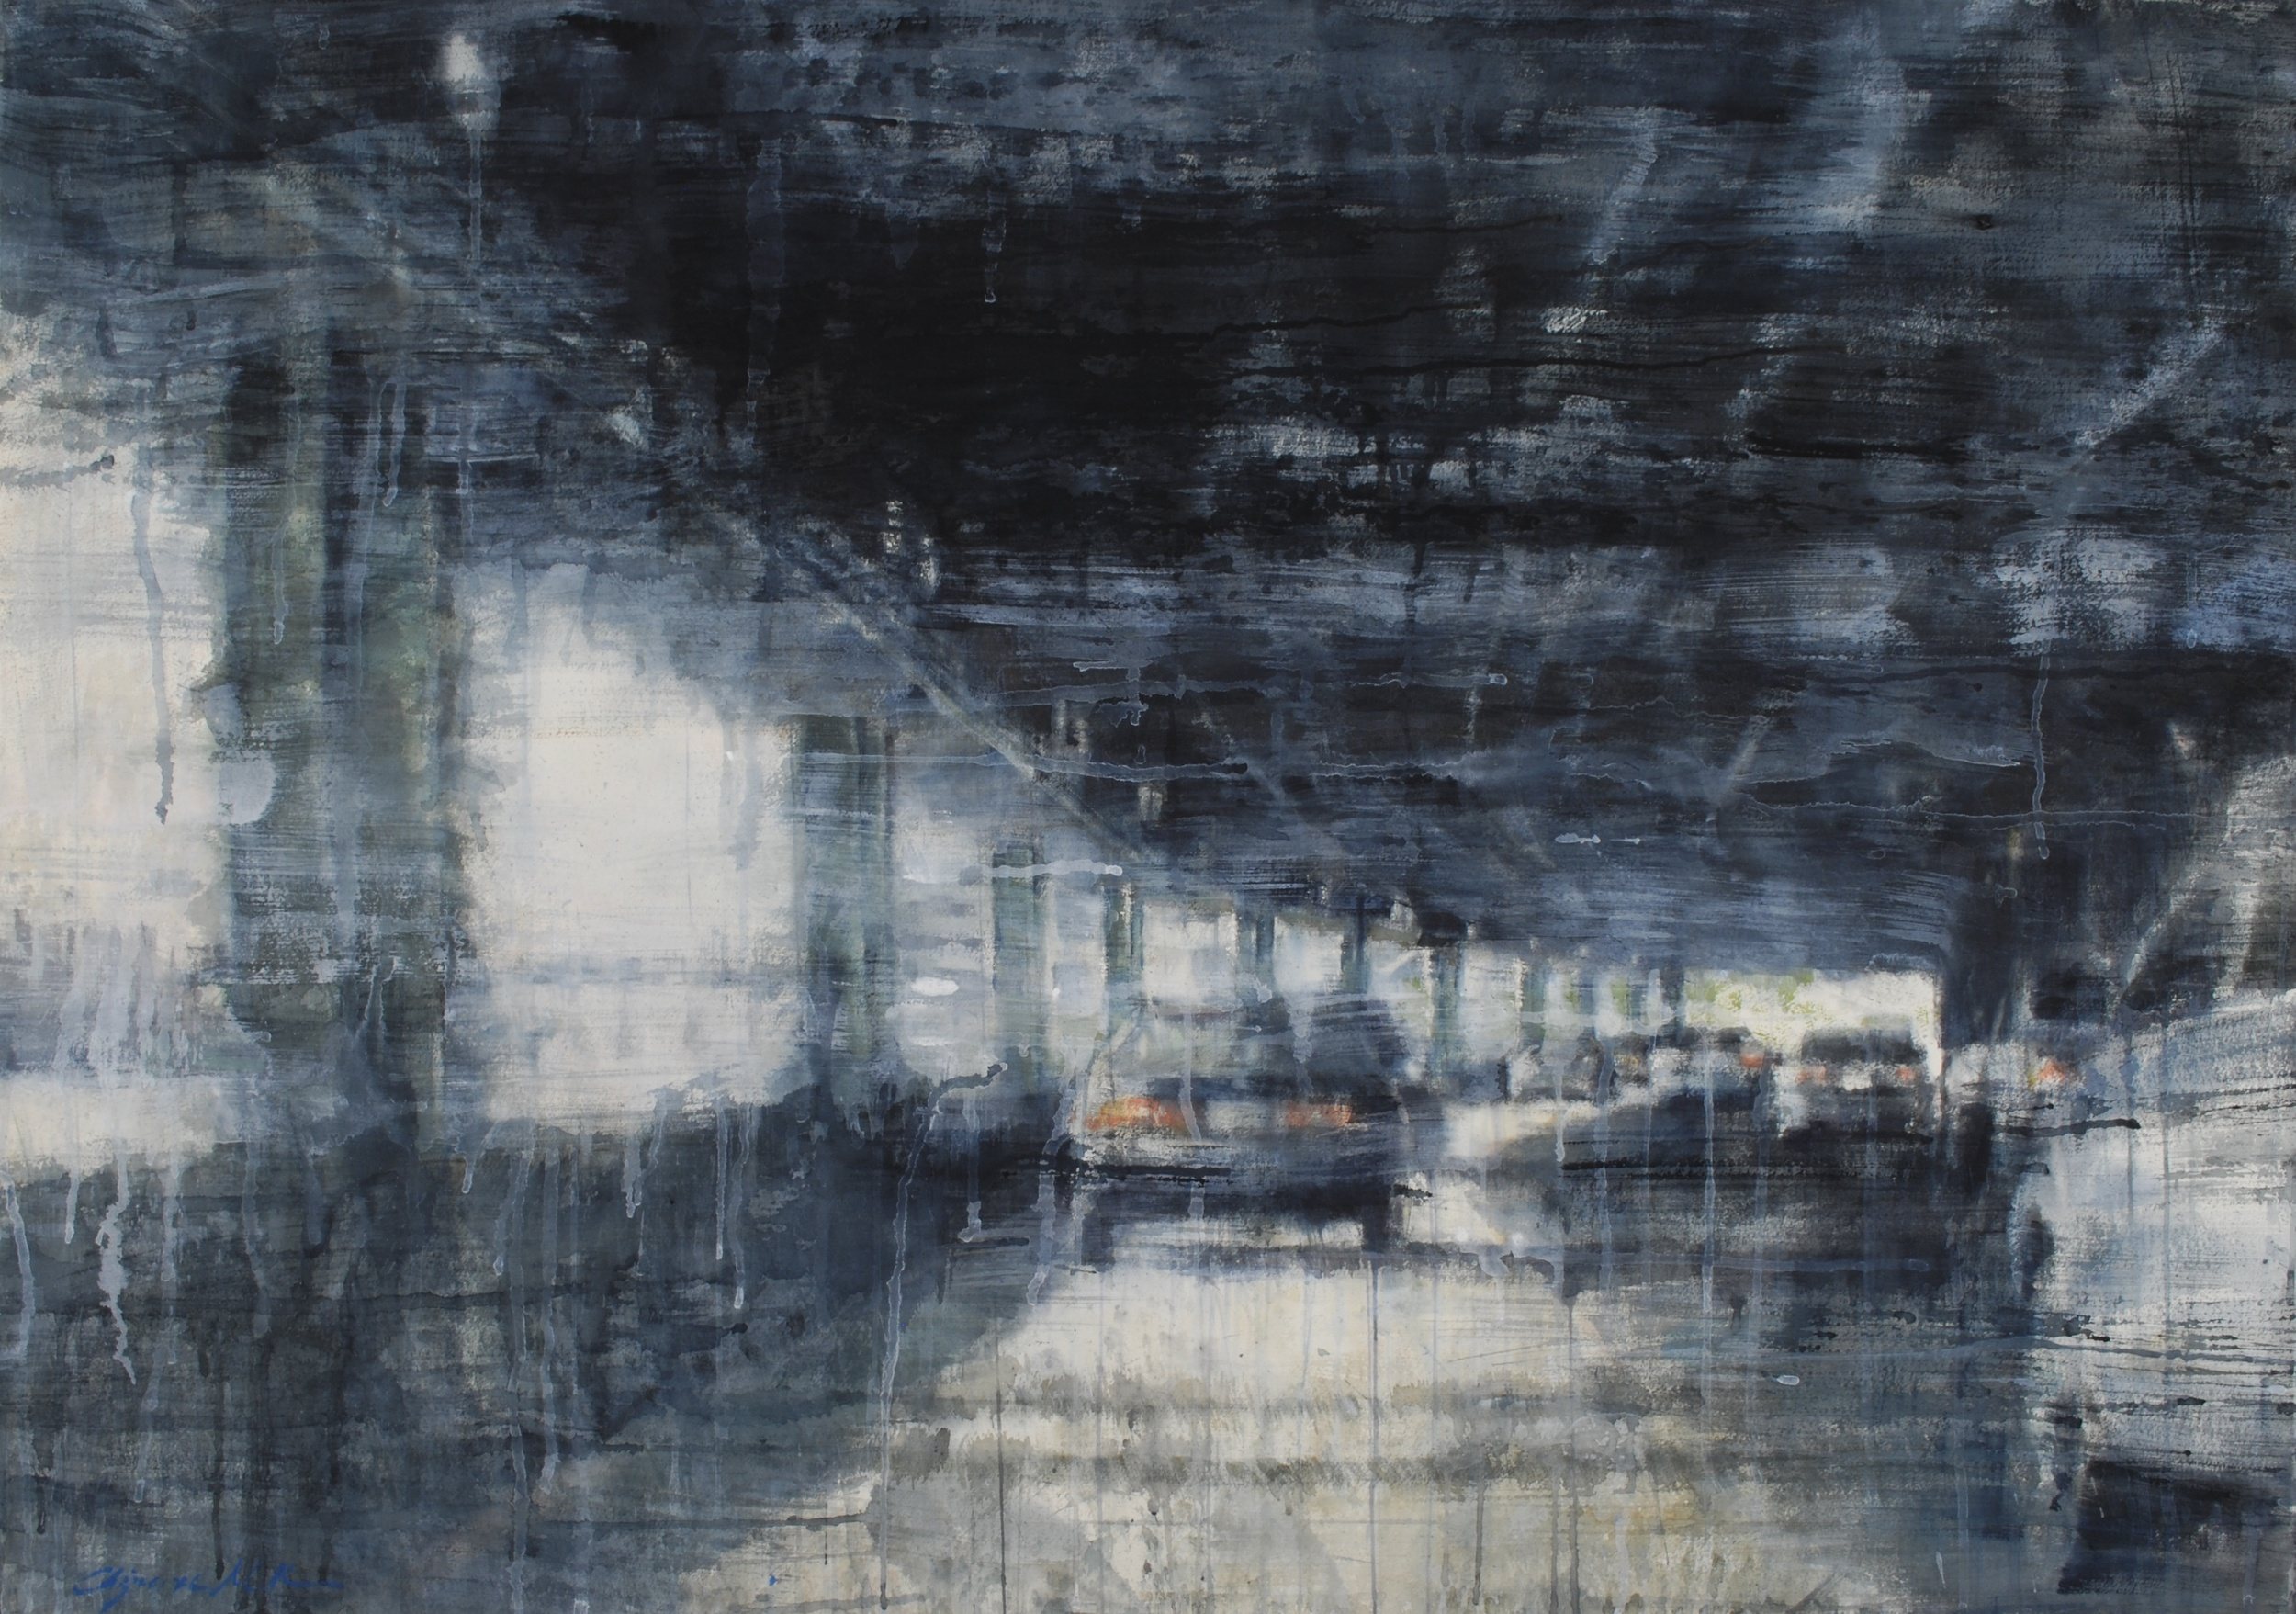 FDR Drive, NYC, 37x52 inches